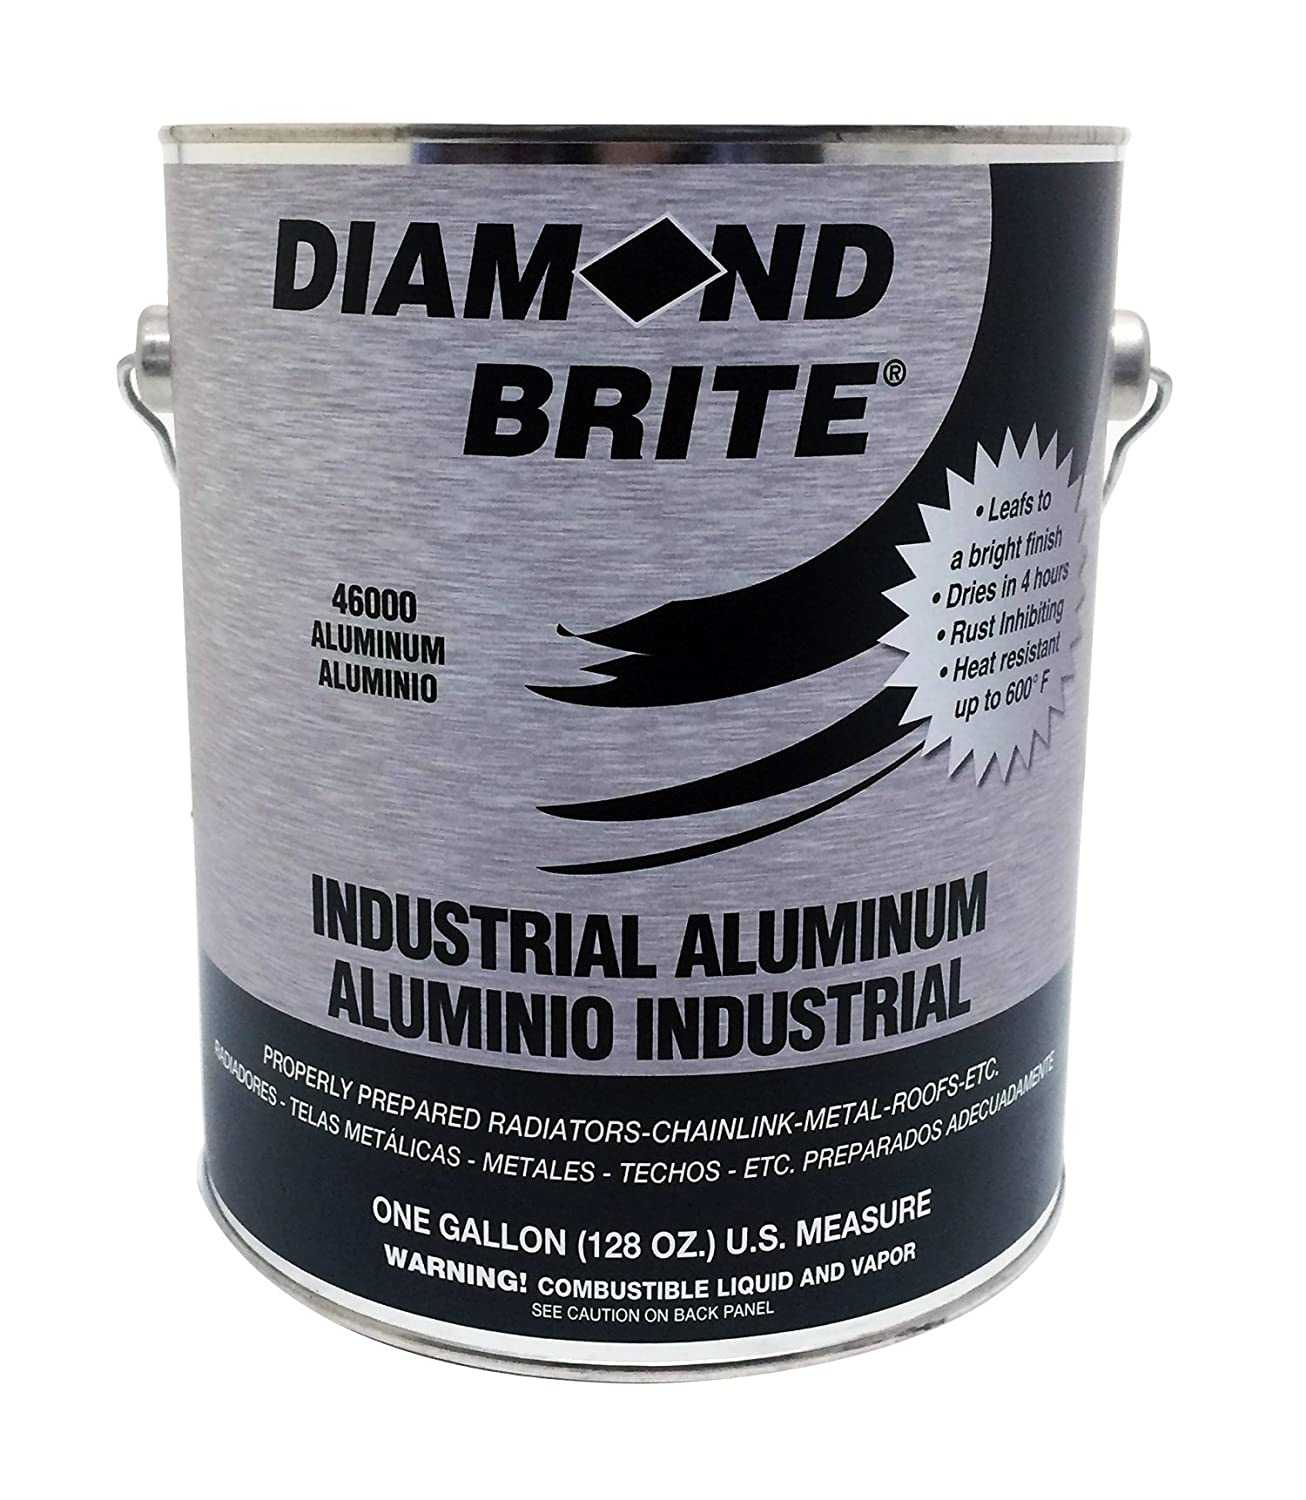 Amazon.com: Diamond Brite Paint 46000 1-Gallon Aluminum Paint: Home Improvement